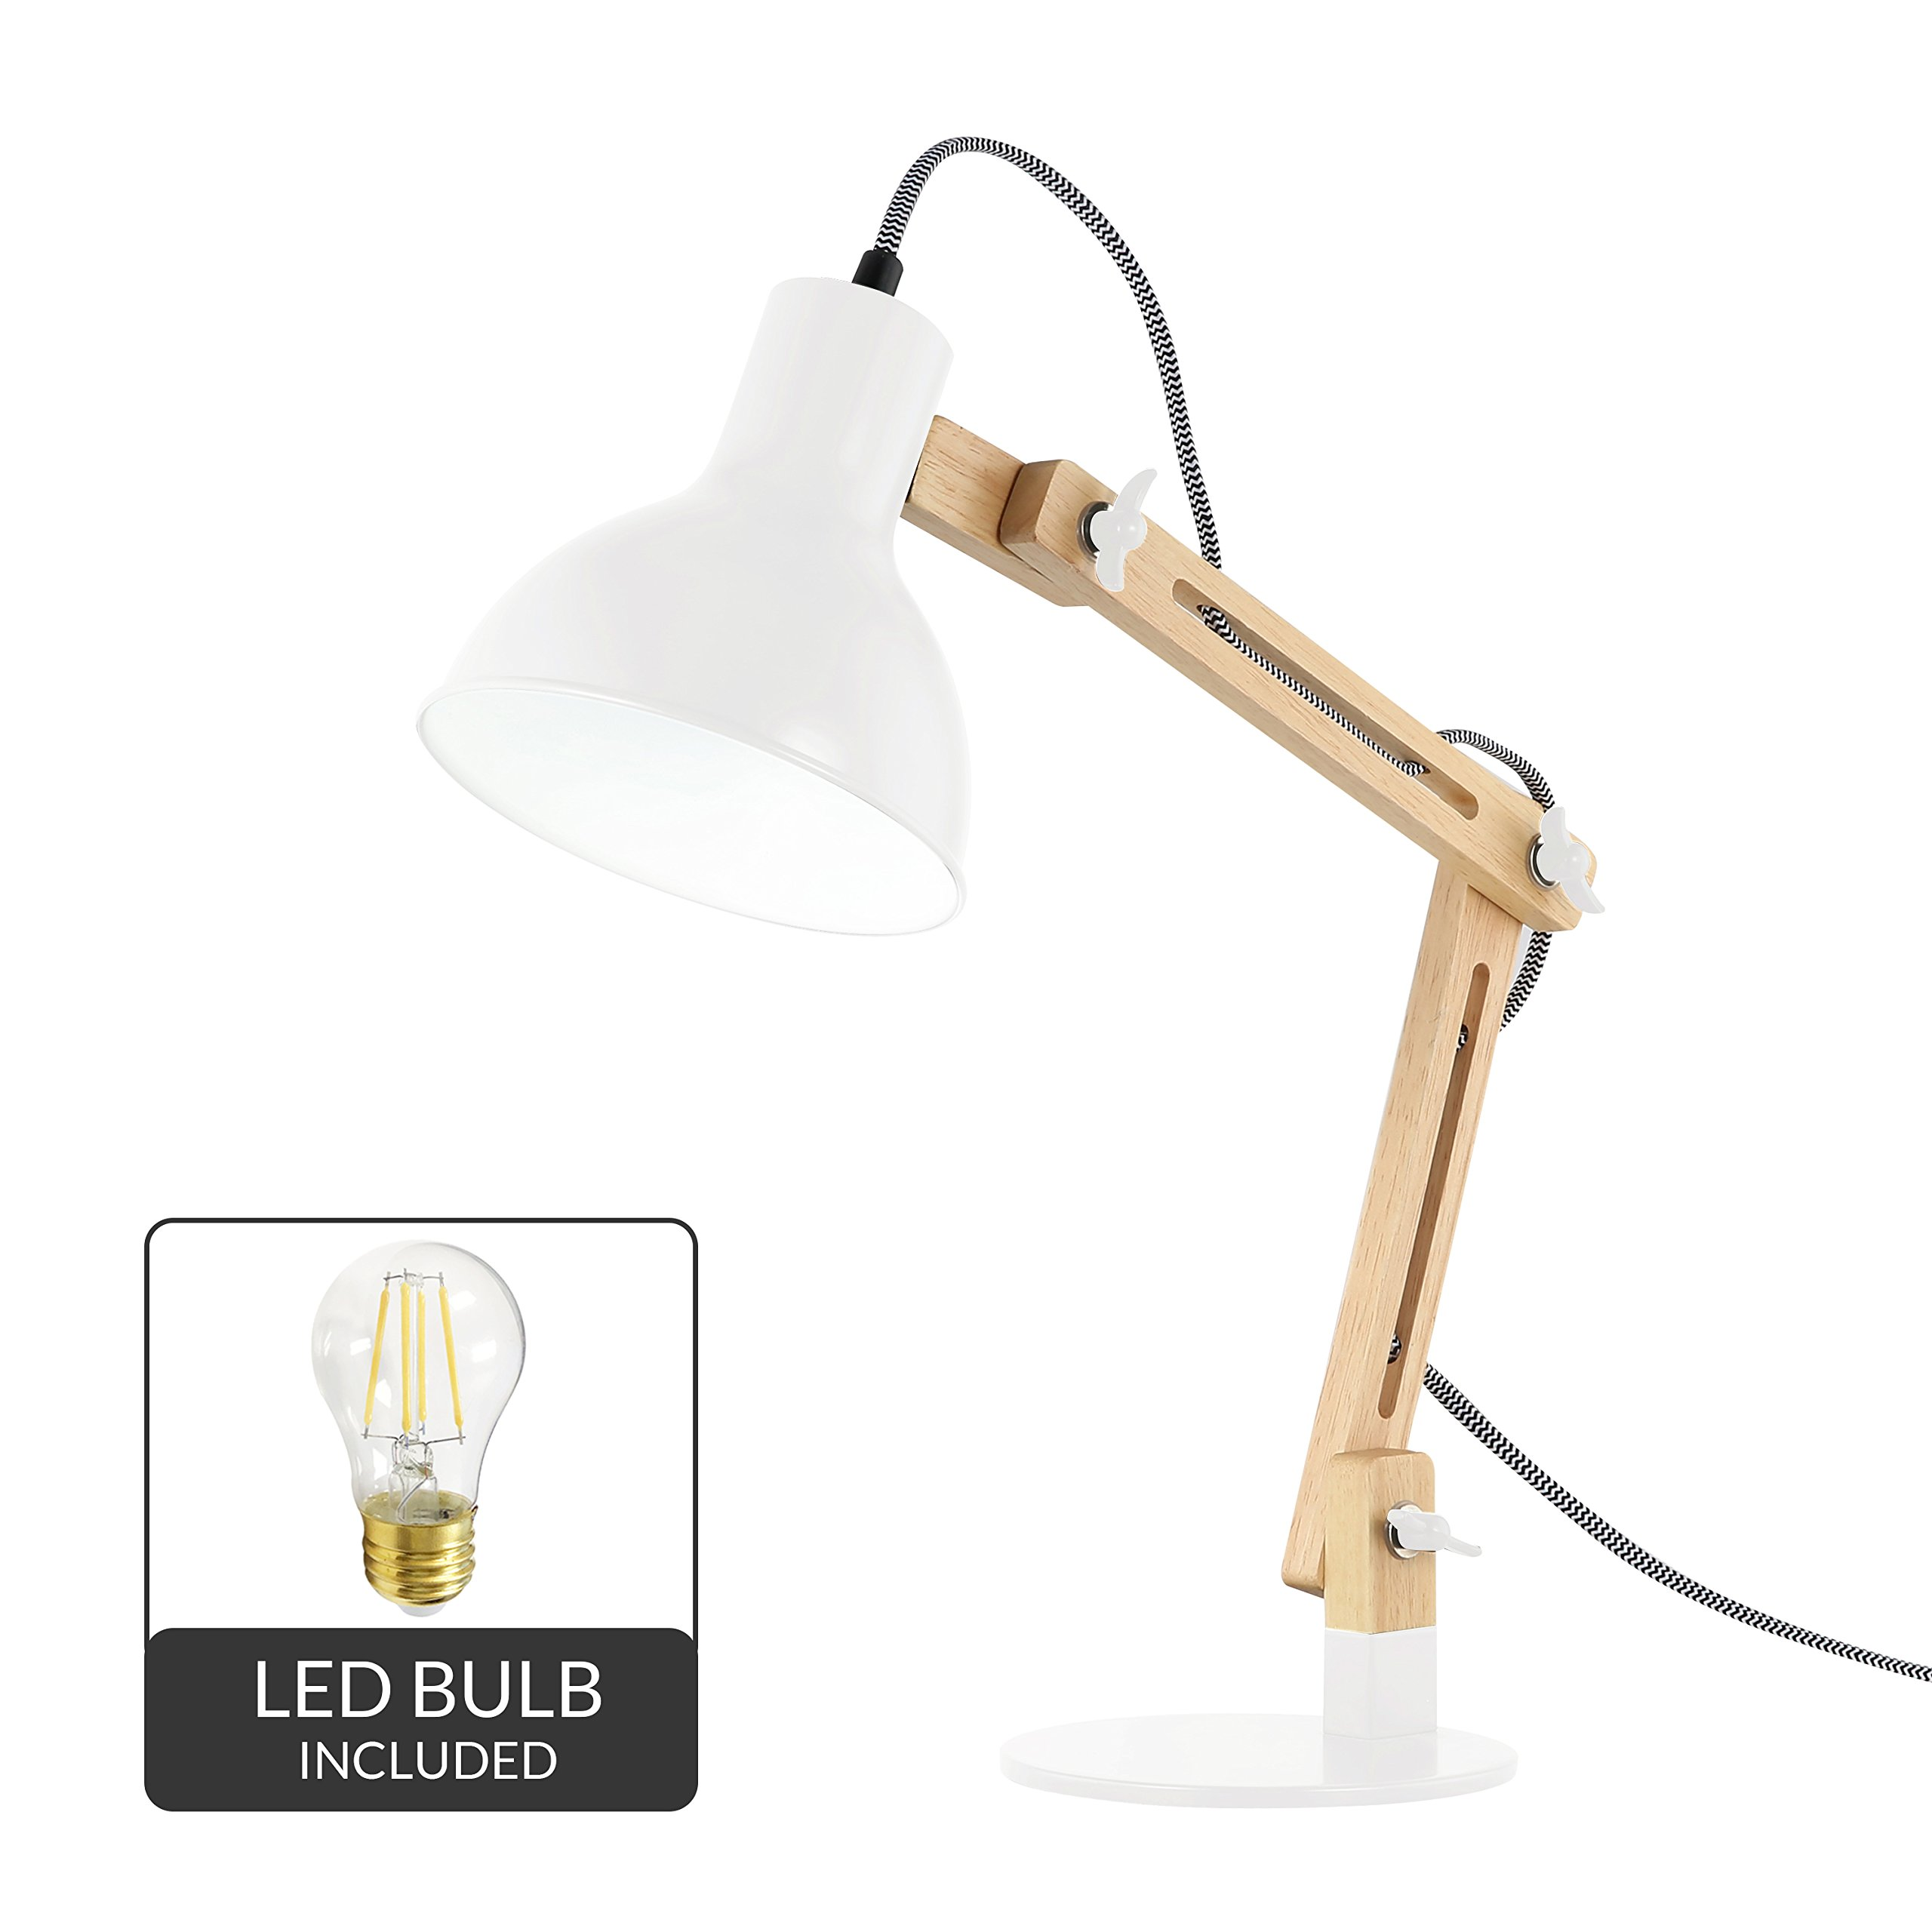 Light Society Galvan LED Task Table Lamp, Natural Wood with White Shade and Base, Modern Industrial Pixar-Style (LS-T229-WHI)